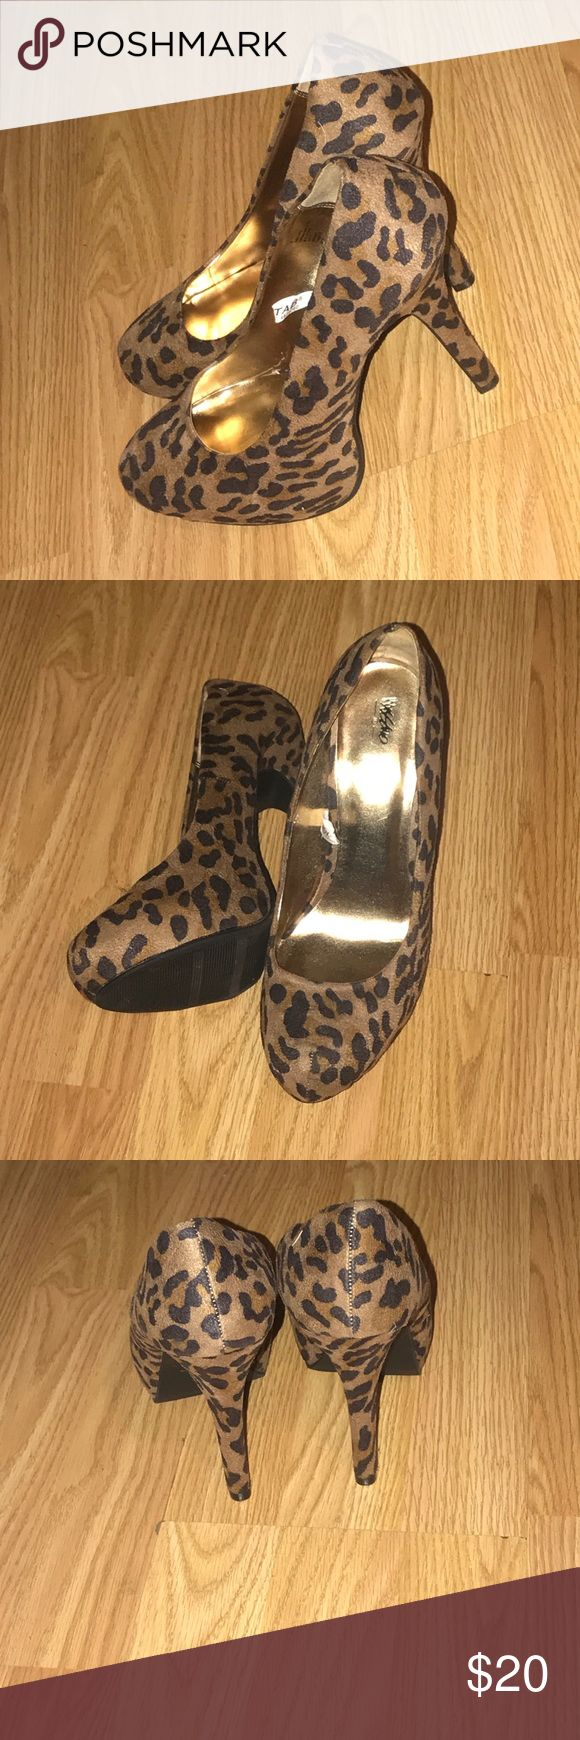 Animal Print High Heels. Very Cute and Comfy. Worn once indoors for a photo shoot. Perfect condition. Open to offers. Mossimo Supply Co Shoes Heels